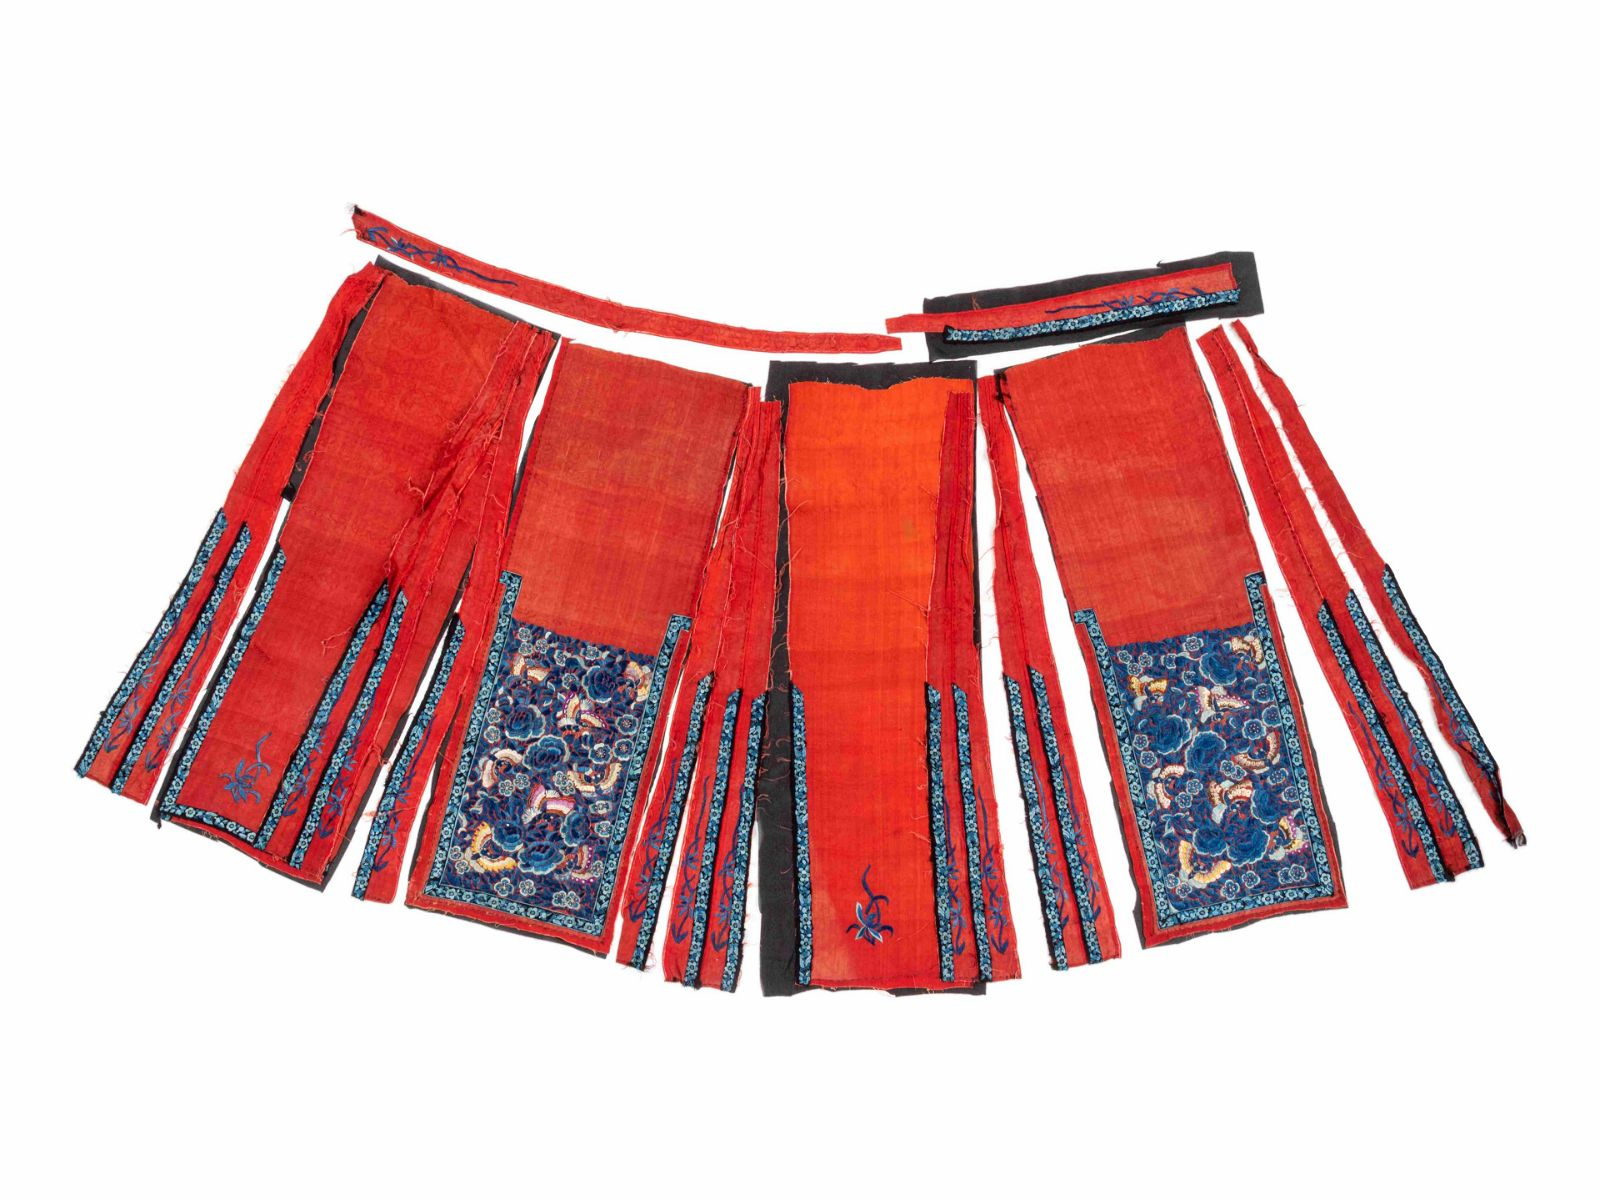 Seven Chinese Silk Textiles